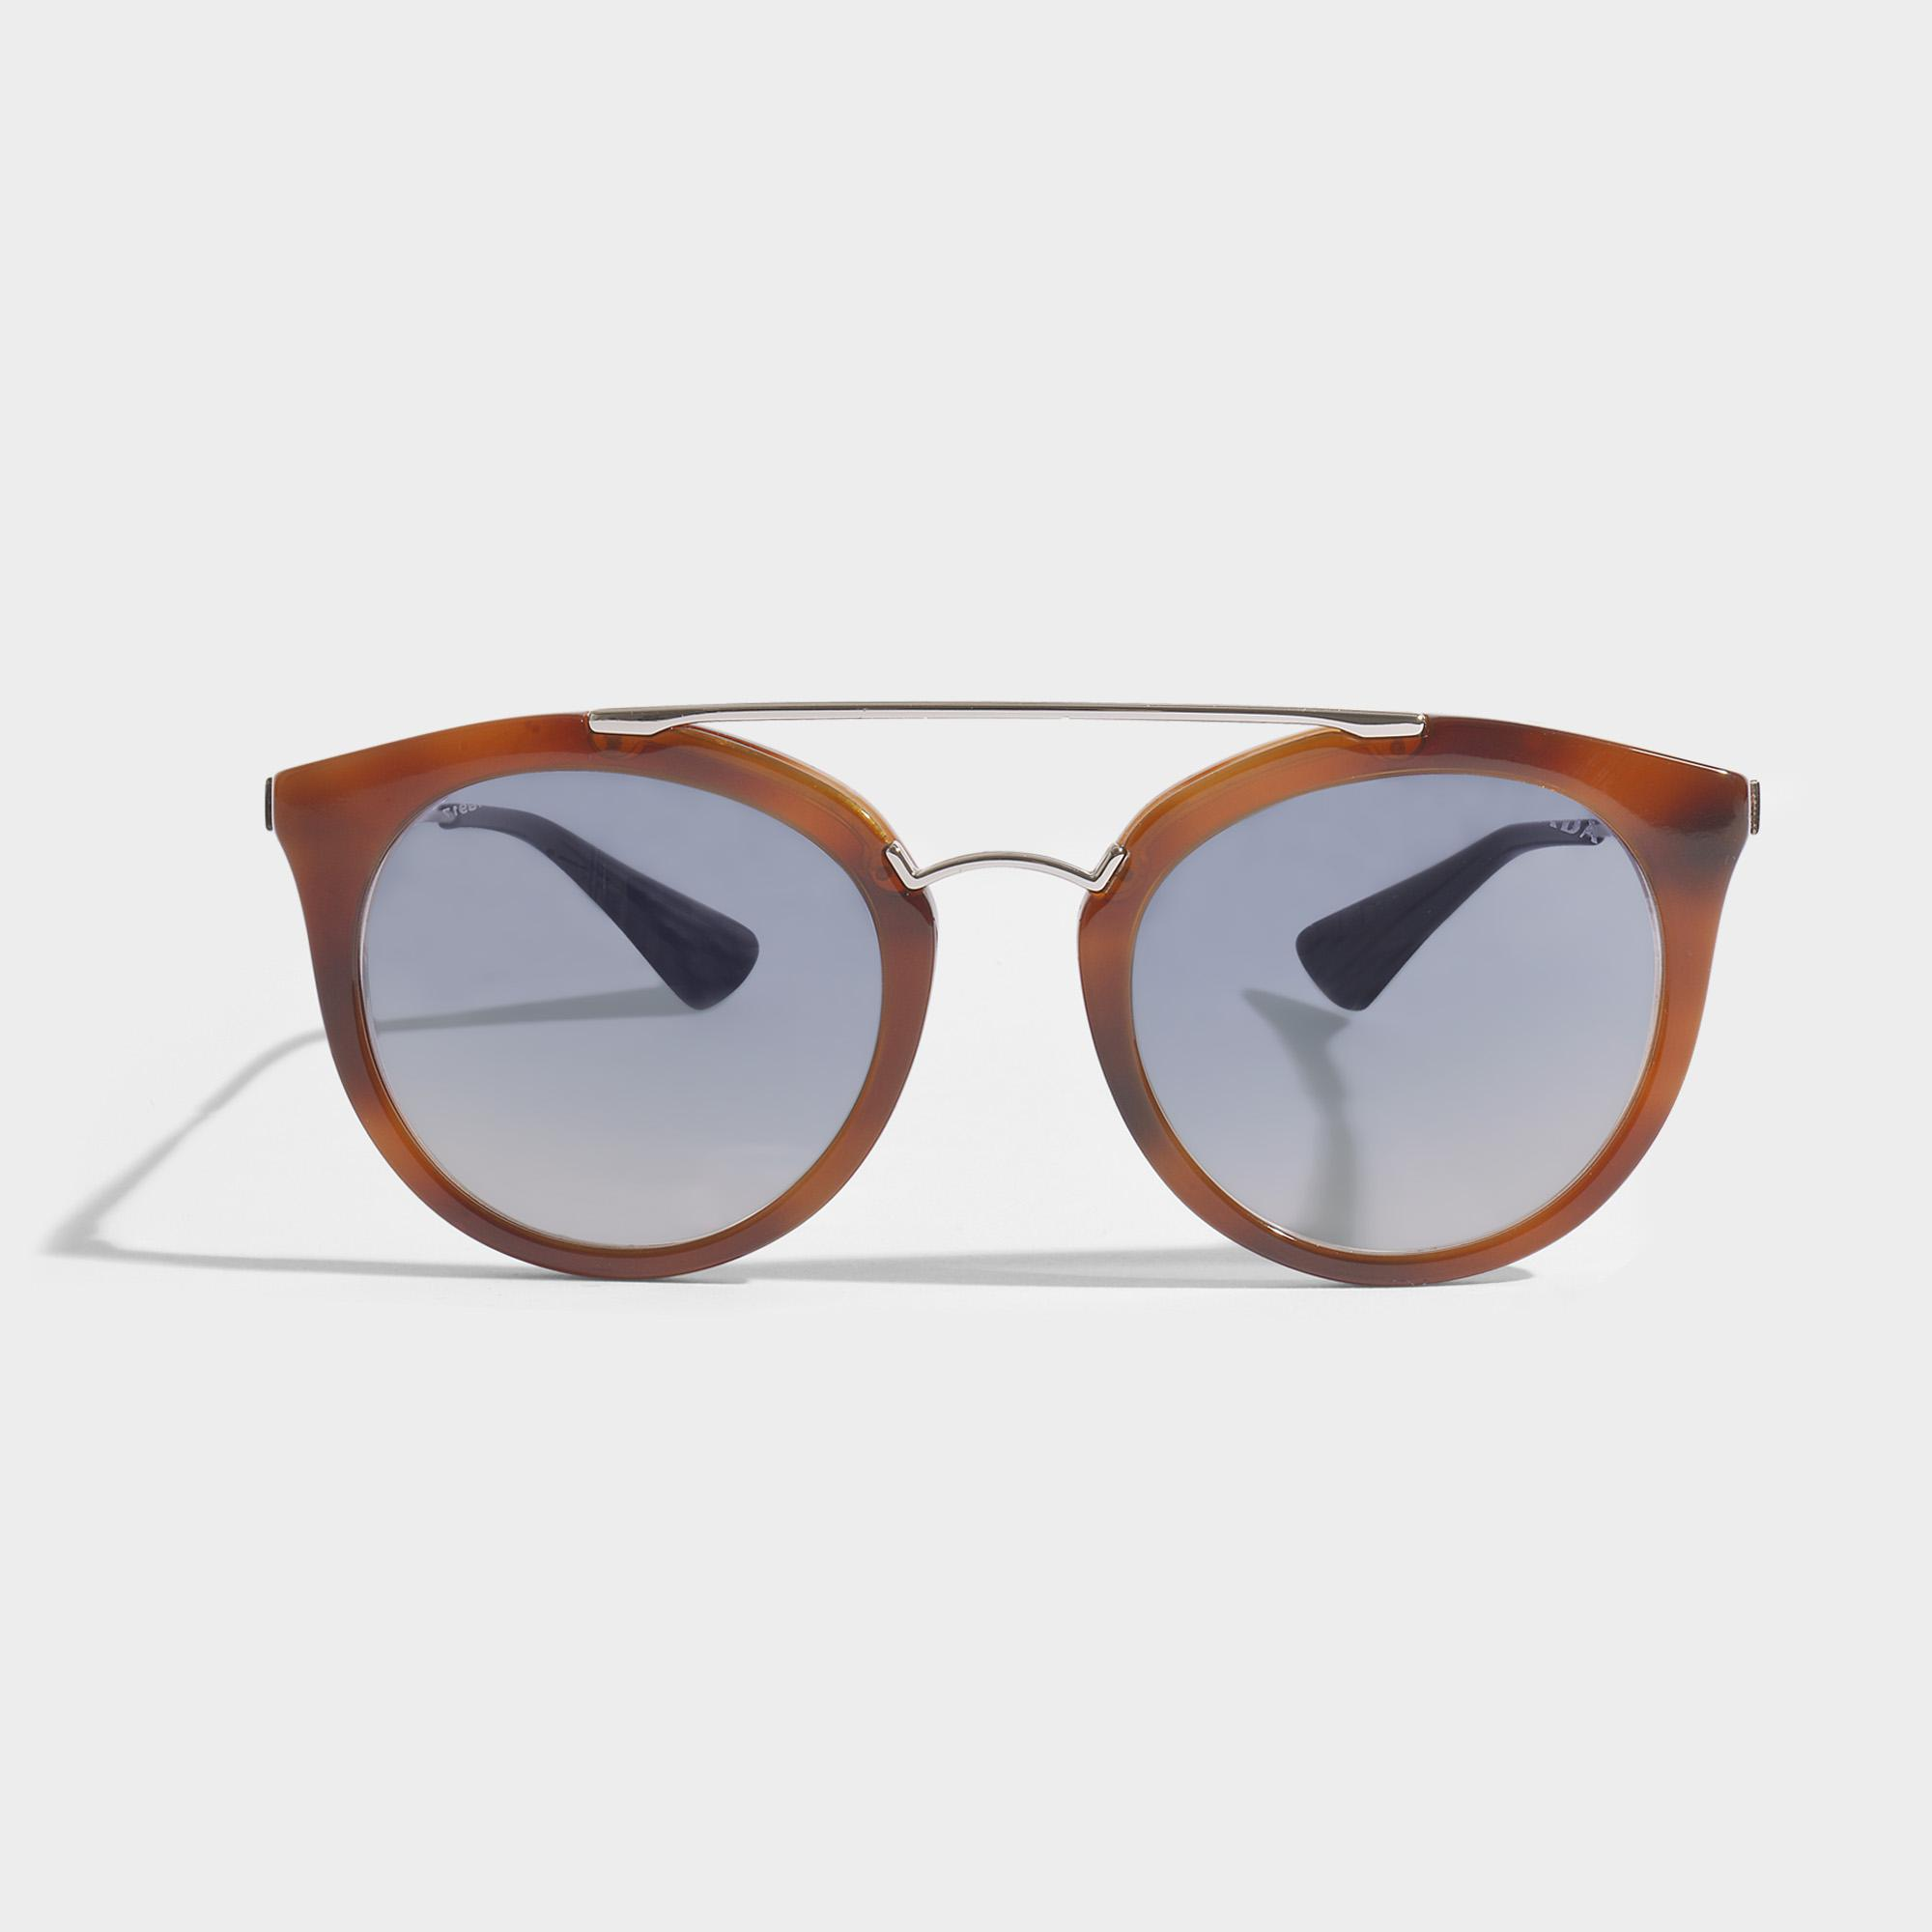 271271bb83 Lyst - Prada 0pr 23ss Sunglasses In Brown Acetate in Brown